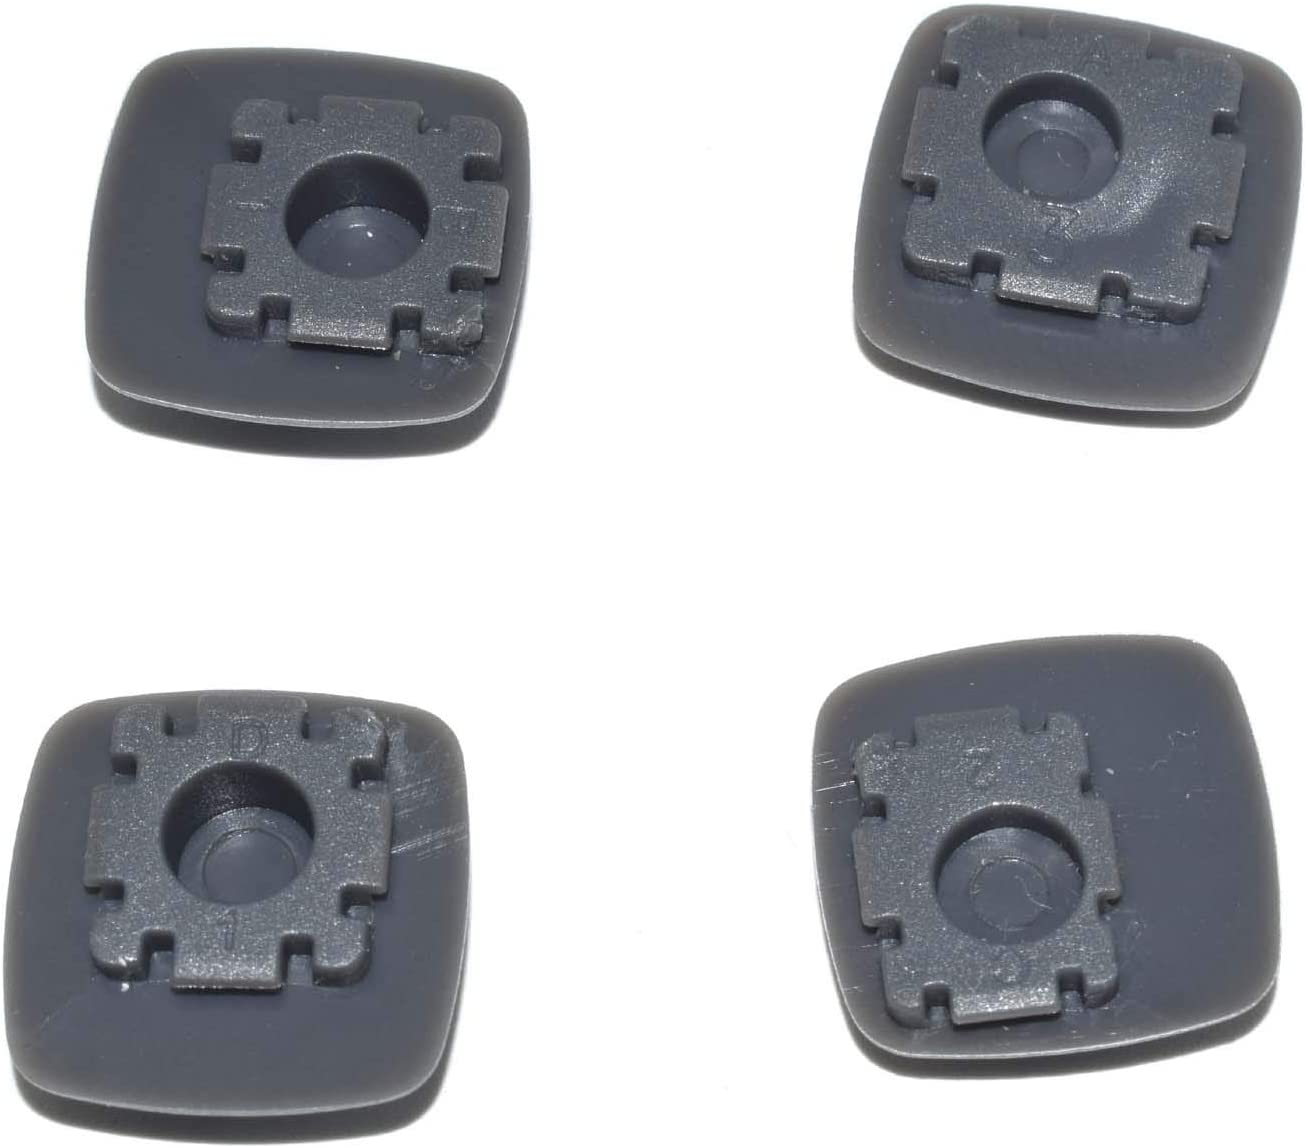 4PCS New Laptop Parts for Lenovo IdeaPad U310 Bottom Cover Rubber Foot Feet Pad Gray Color